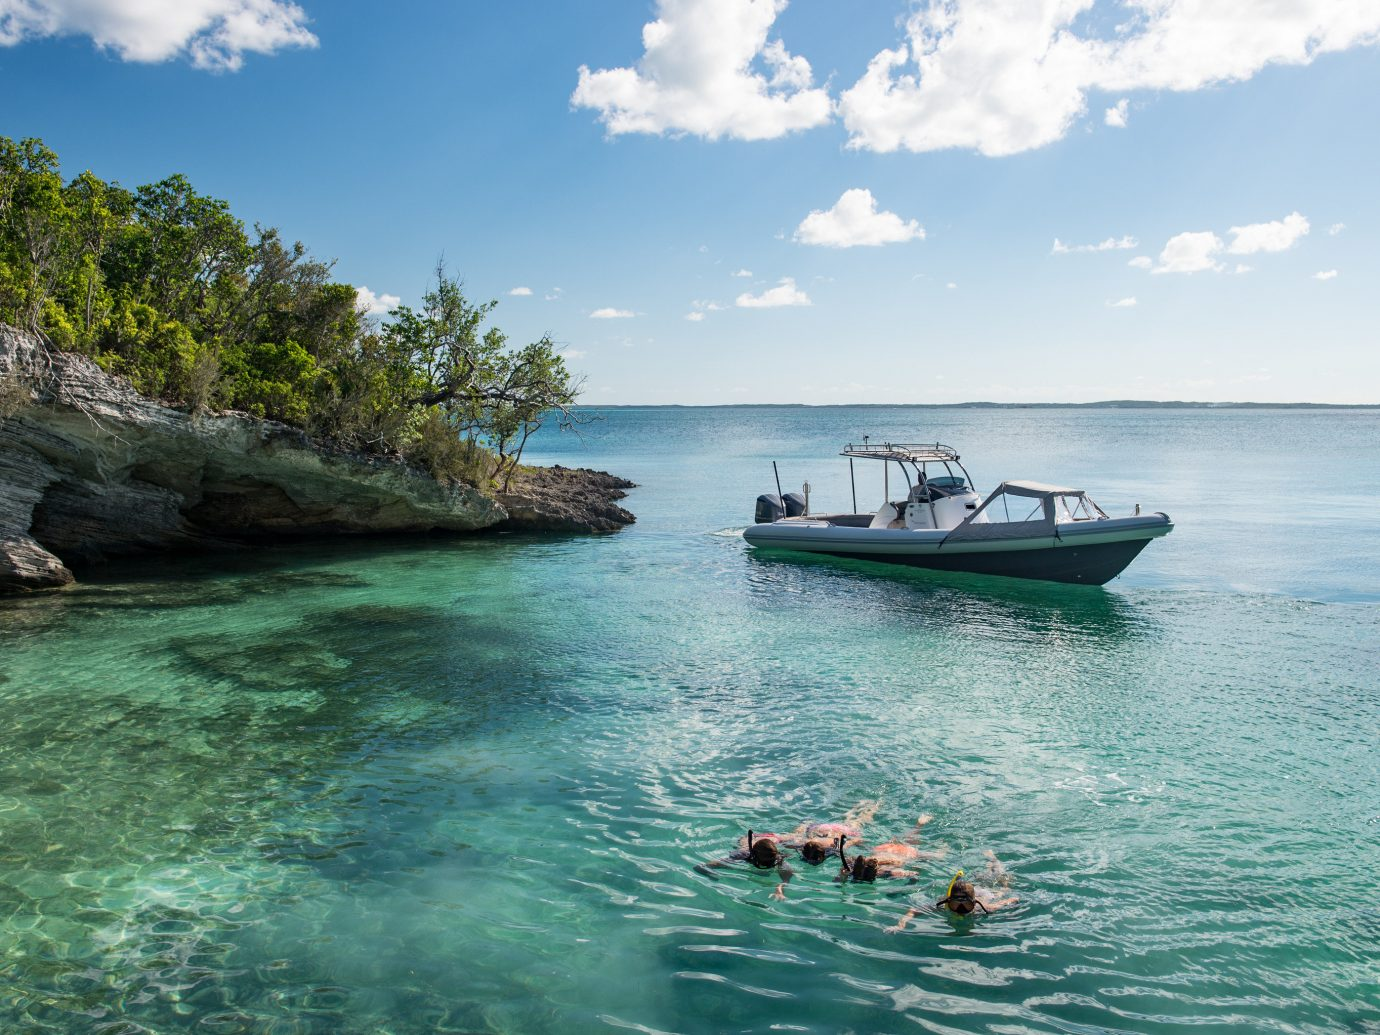 Bahamas Trip Ideas water sky outdoor Sea Boat body of water coastal and oceanic landforms Ocean Coast tropics bay Lagoon Island promontory tourism vacation islet Nature cloud caribbean tree cape Beach inlet landscape calm cove archipelago swimming day